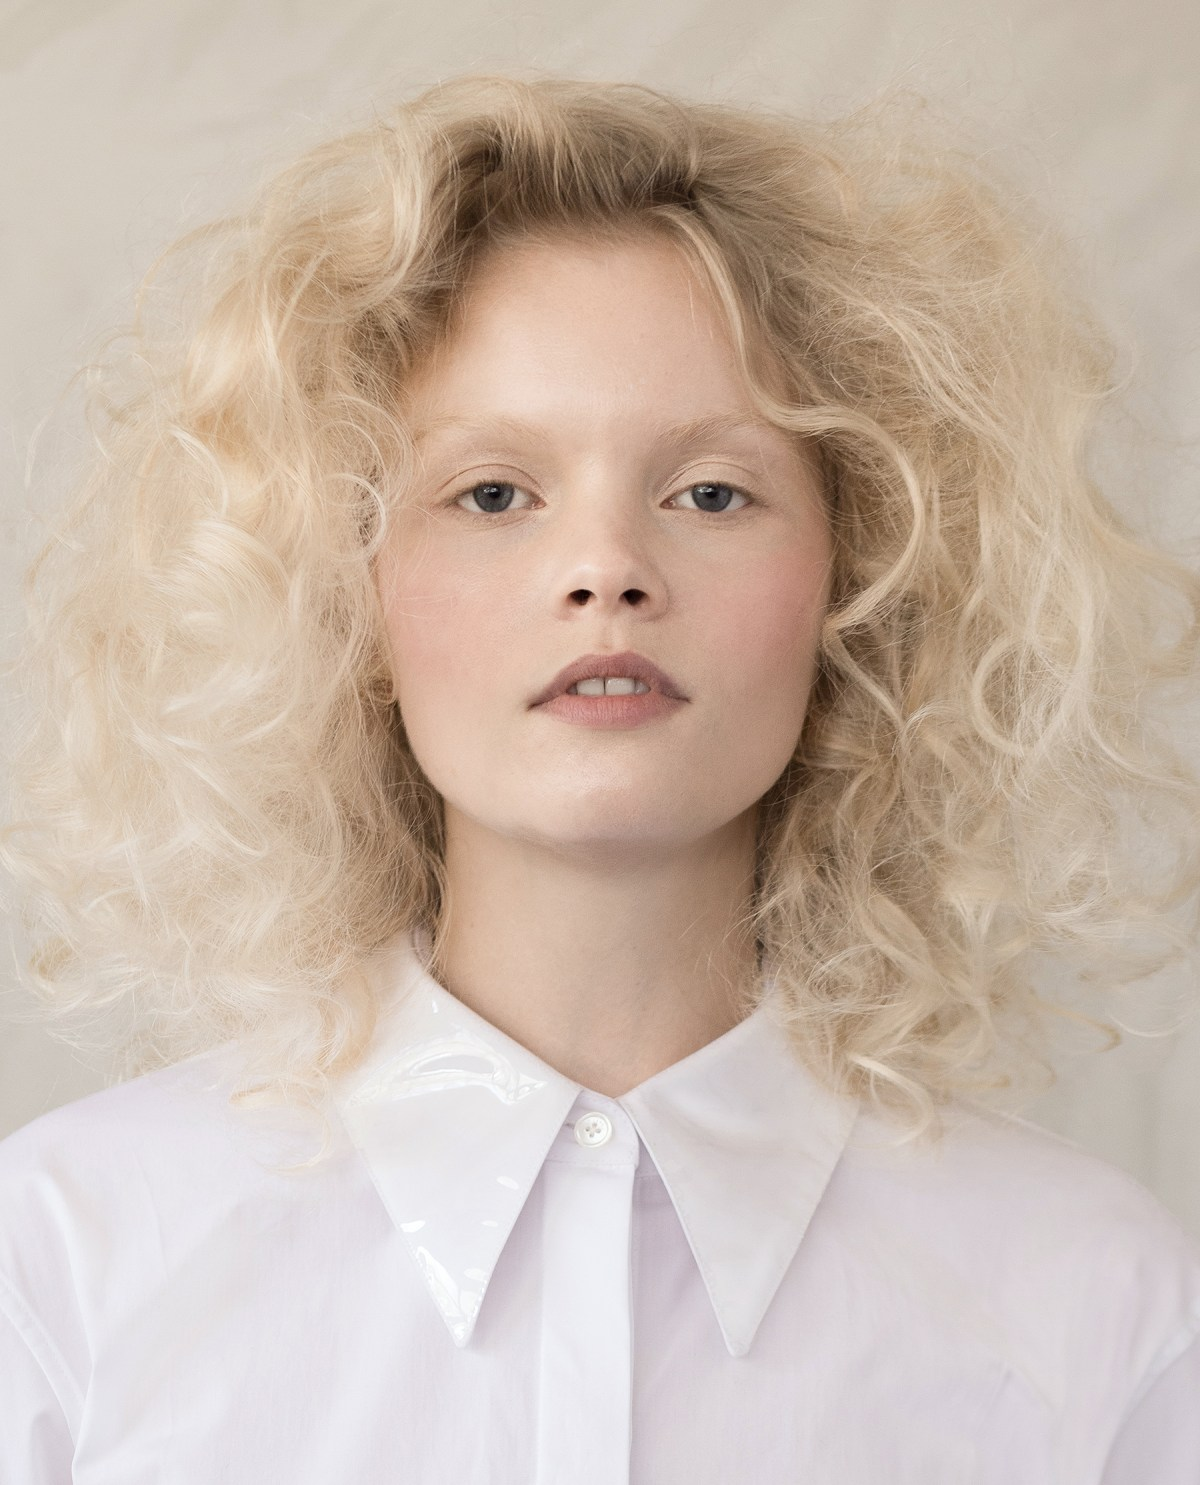 Blond model wearing a white Helmut Lang button-up shirt